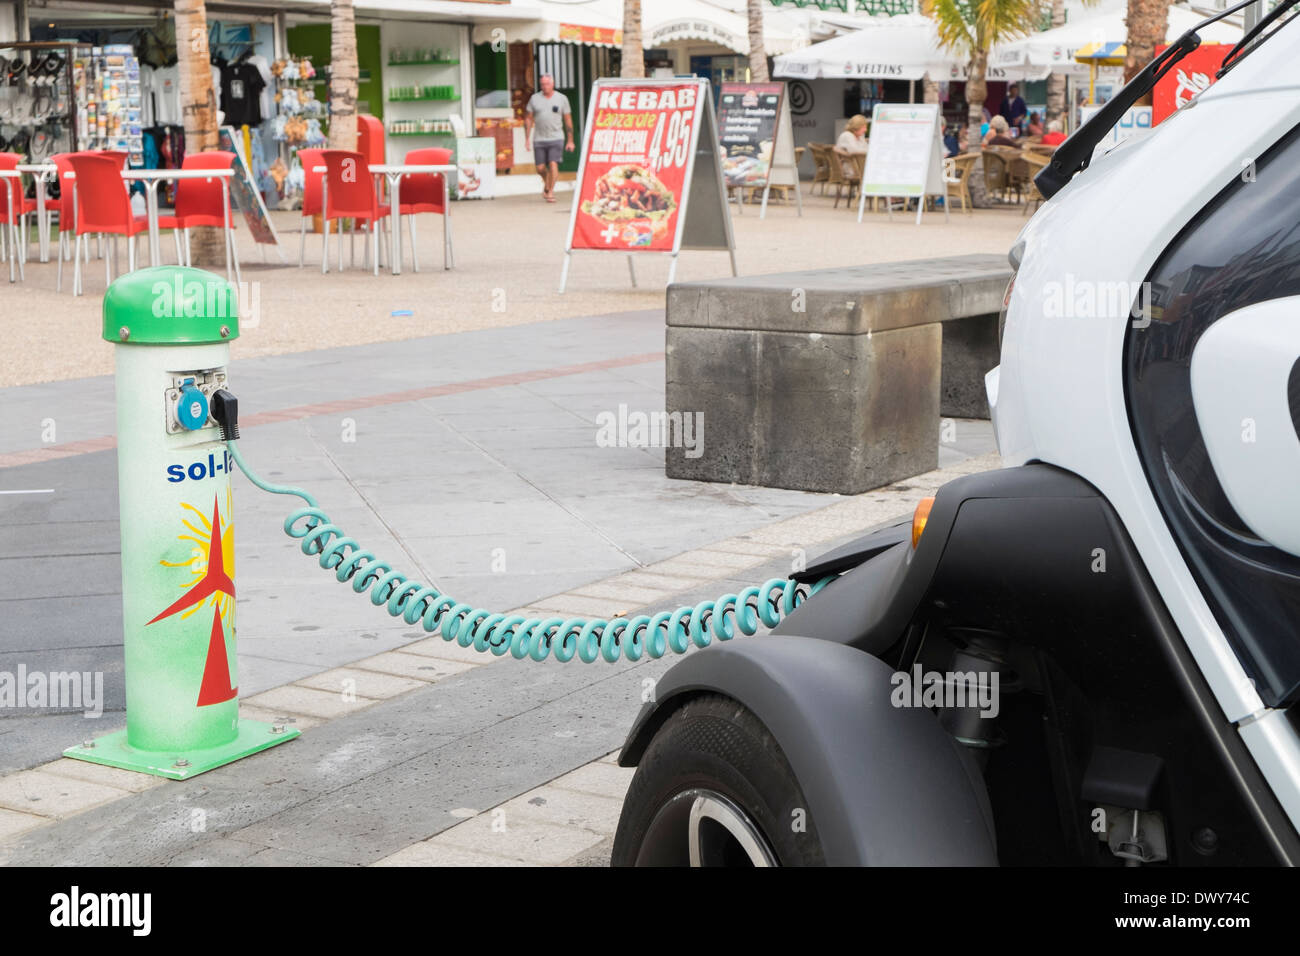 Renault Twizy battery-powered electric car plugged in to a Sol-lar battery charging point on roadside in Canary Islands Spain - Stock Image